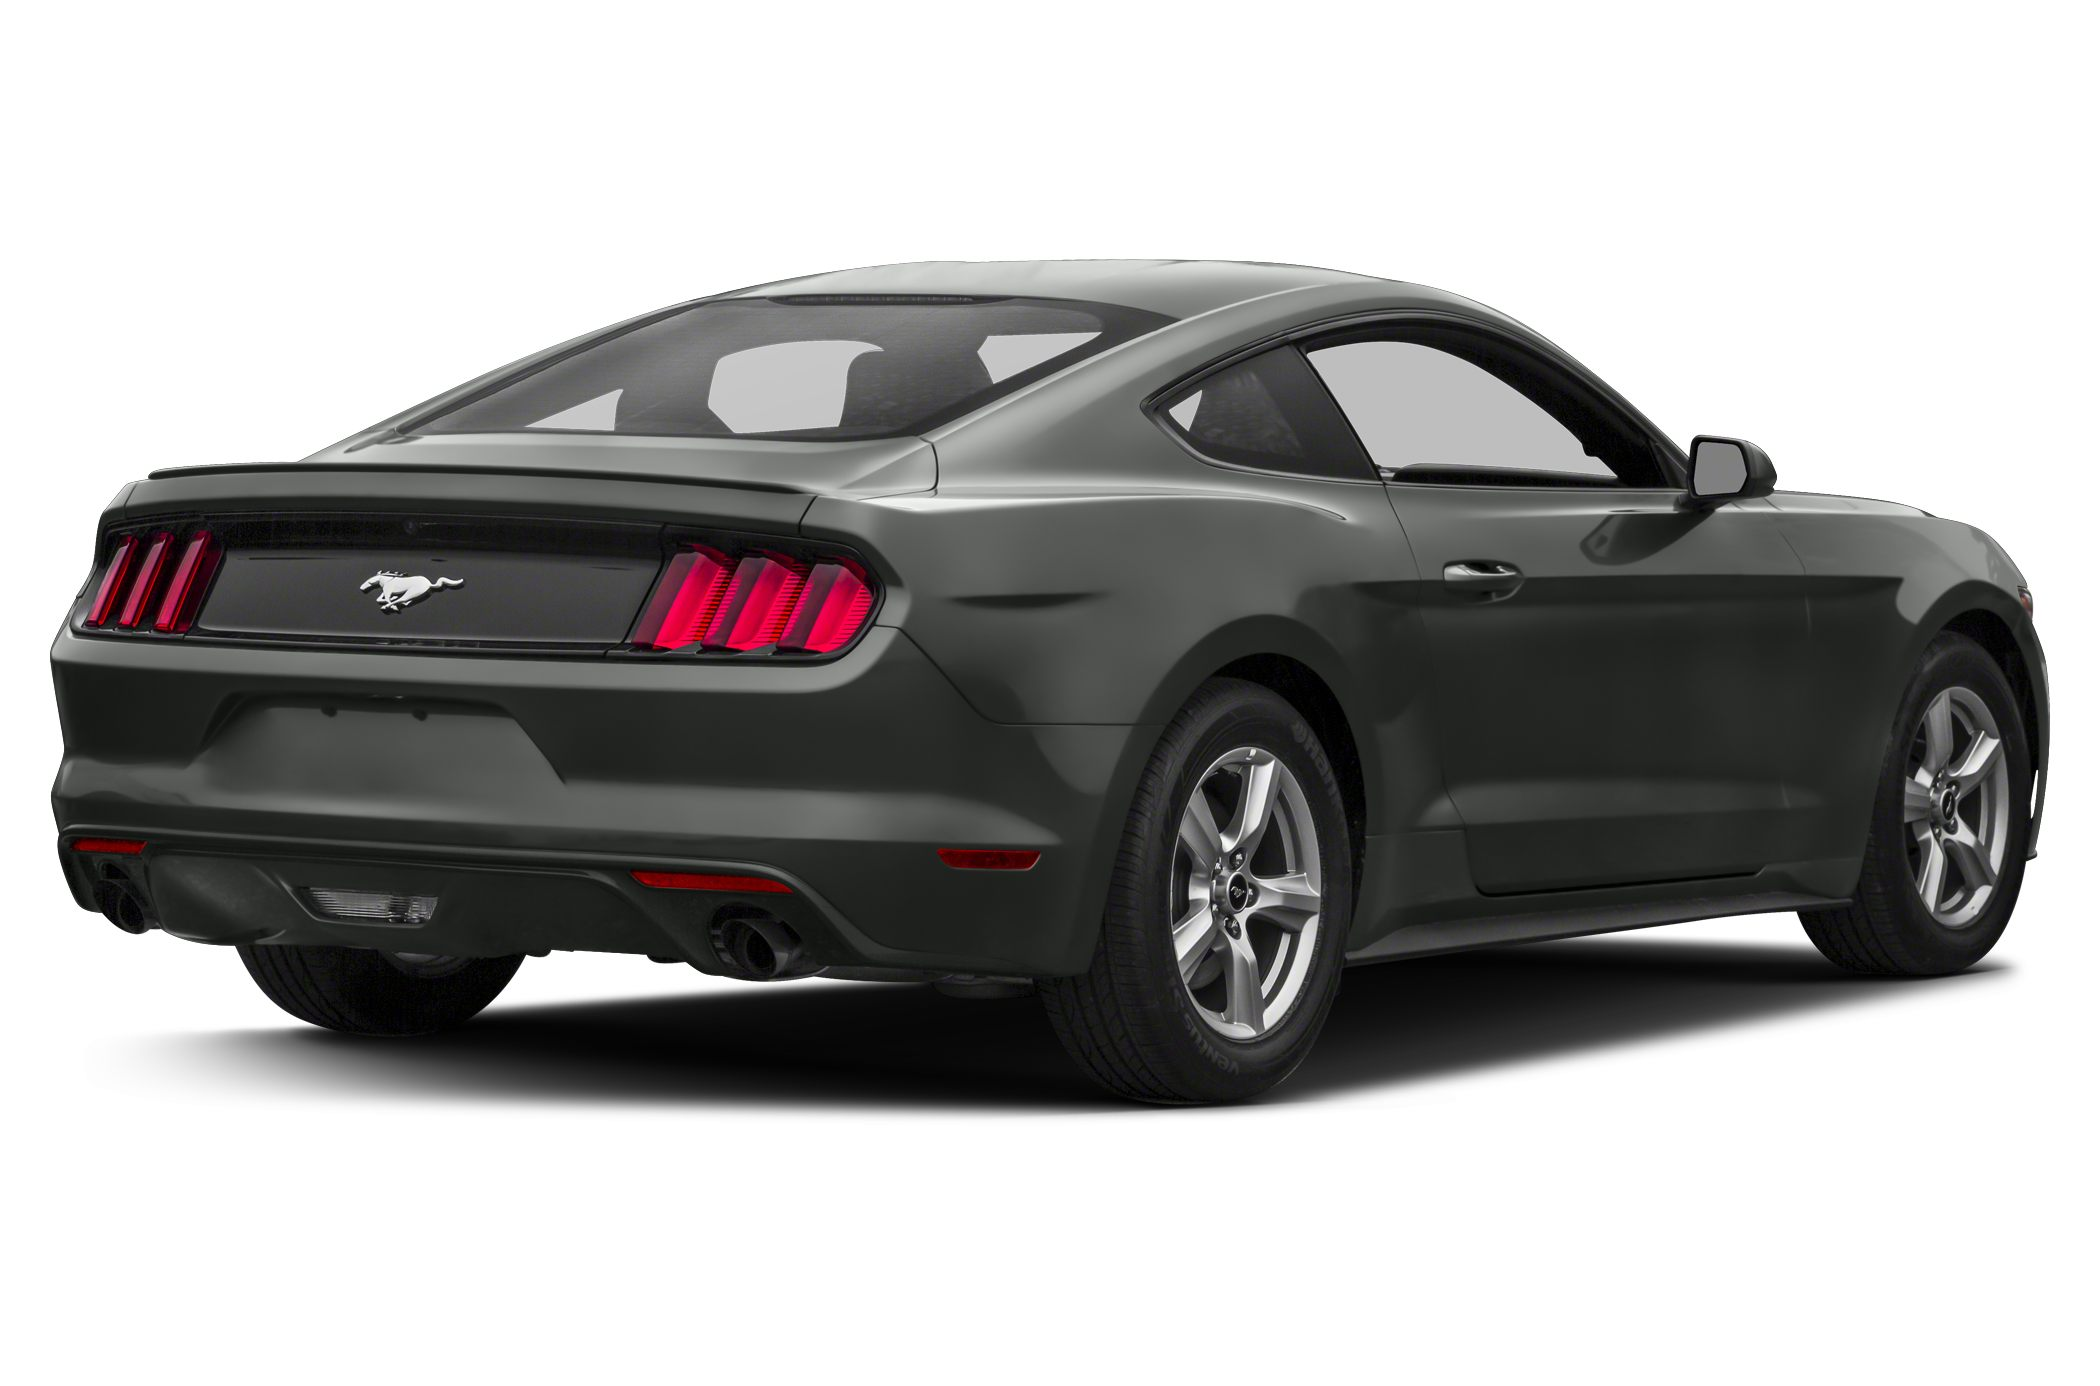 2018 ford mustang 5 0l fastback gt car 2018 ford mustang car price engine full technical. Black Bedroom Furniture Sets. Home Design Ideas